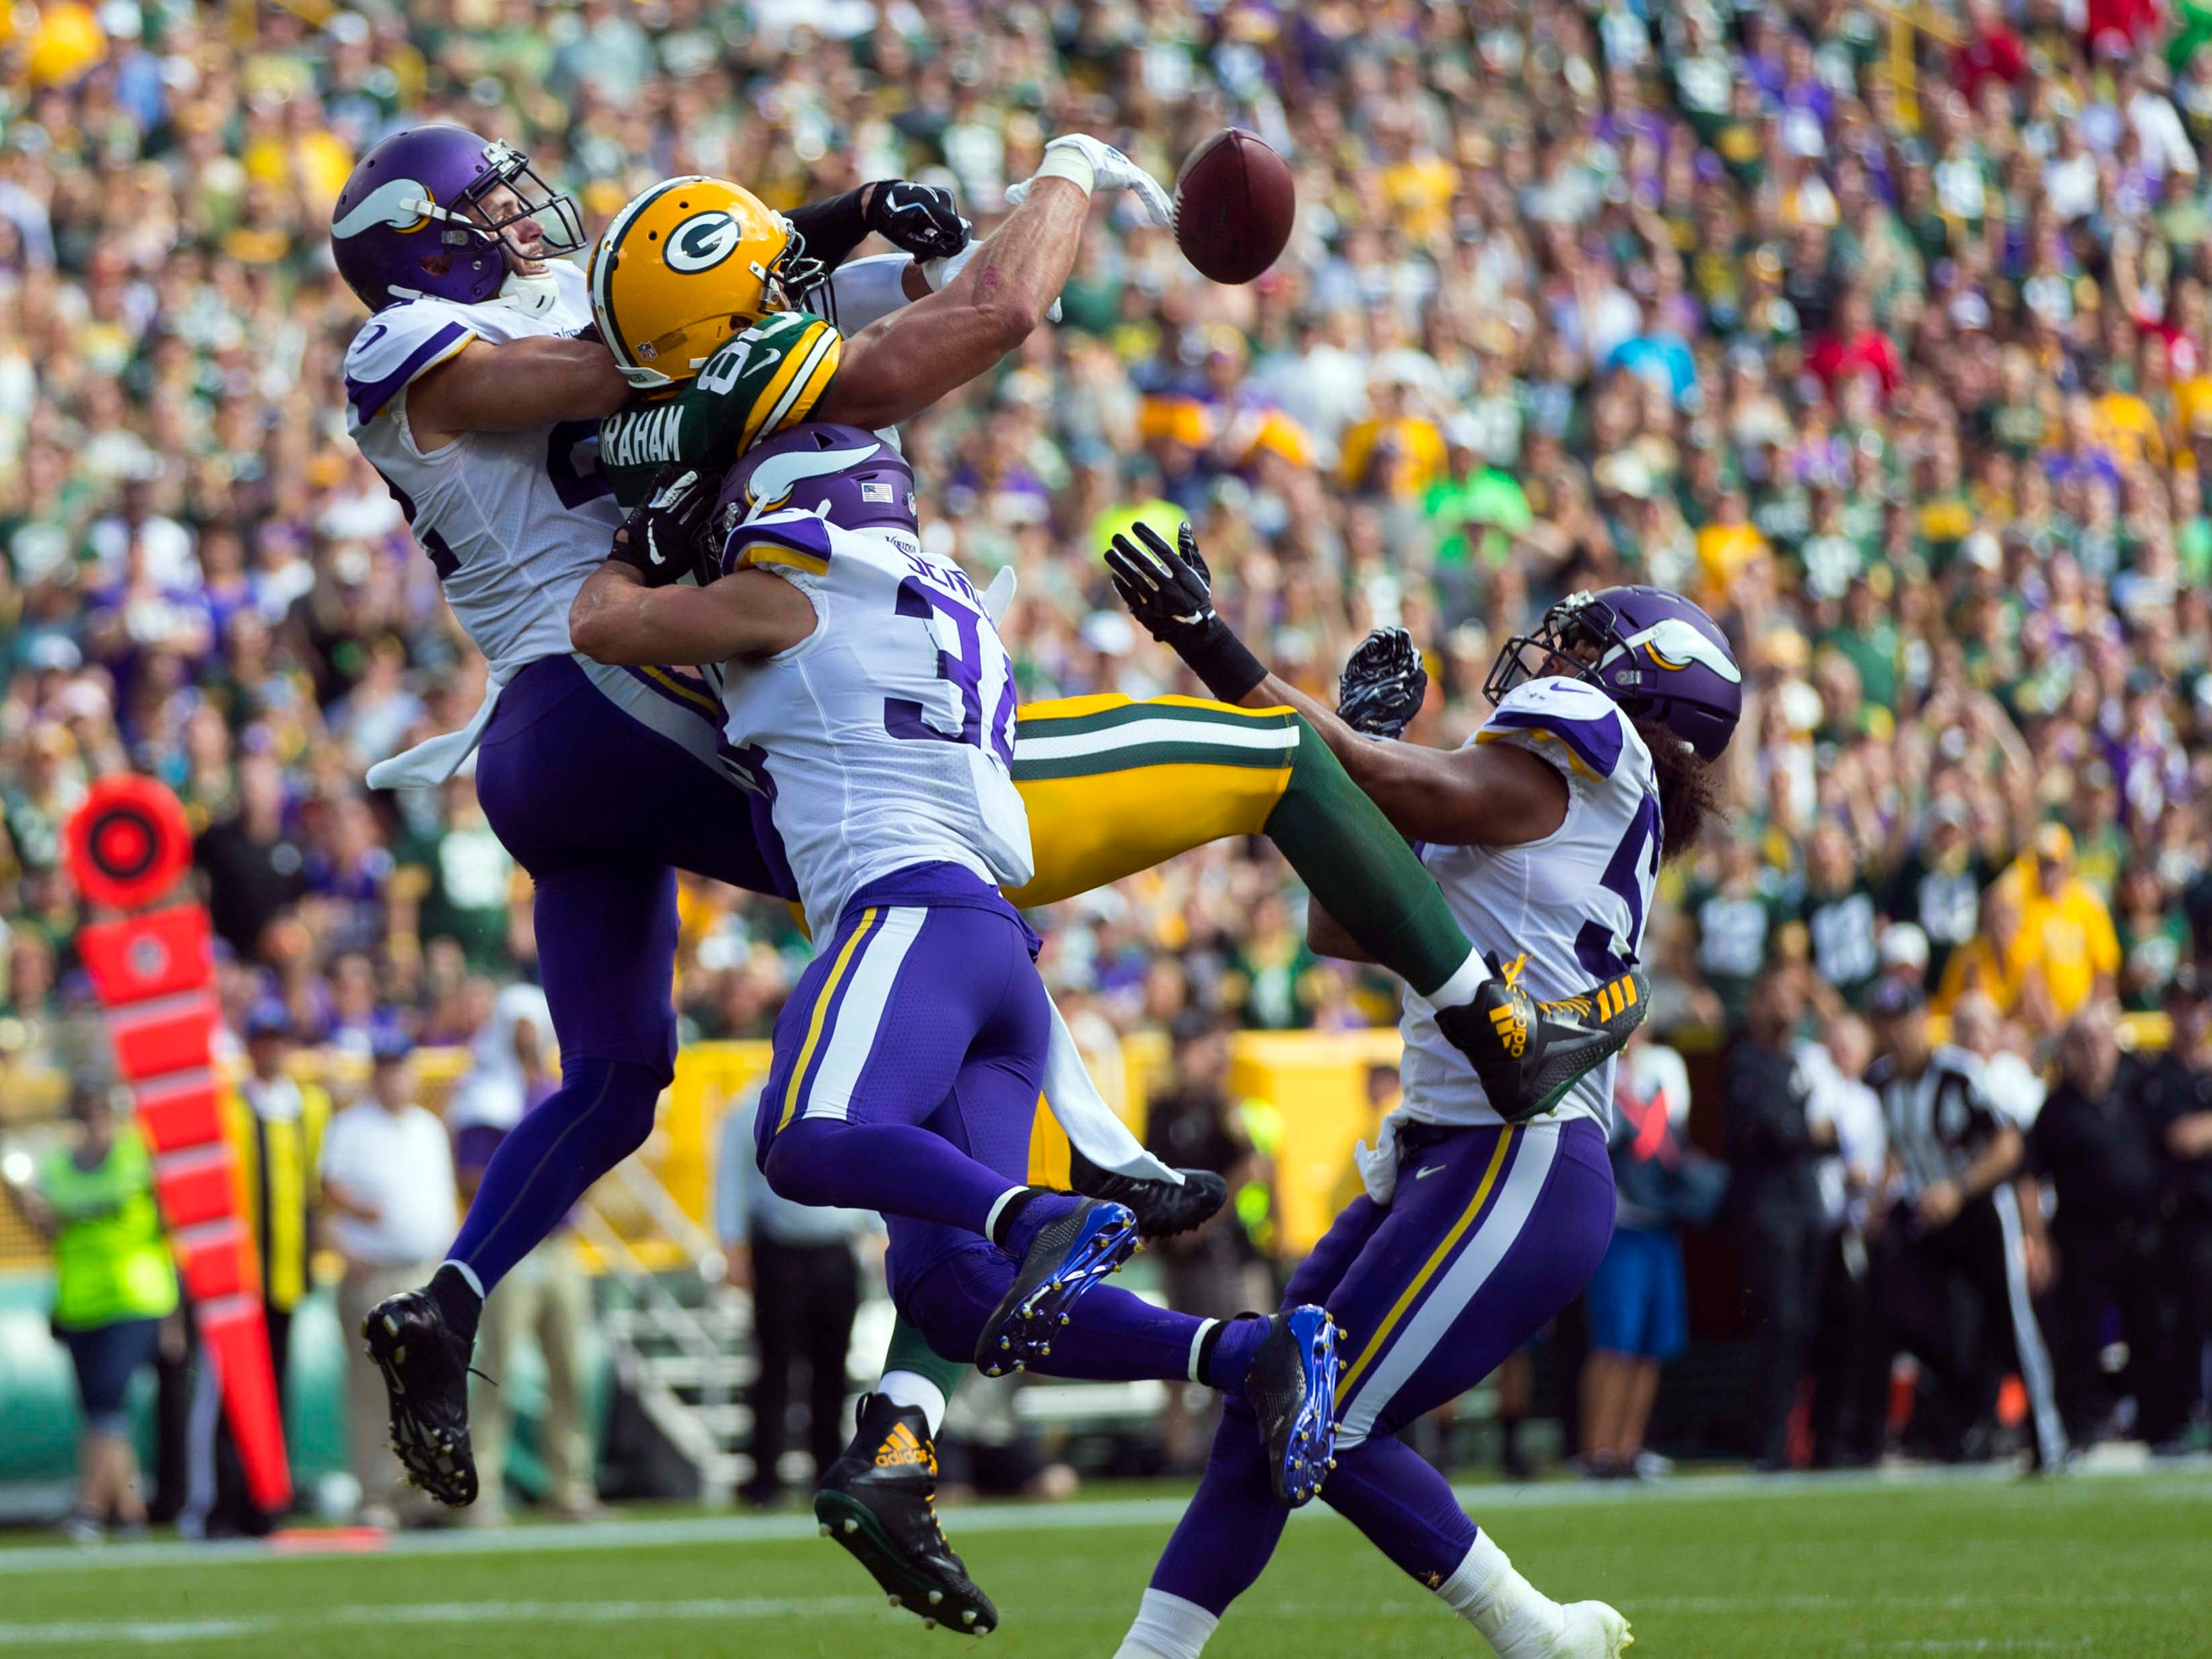 5. Vikings (4): After seeing Clay Matthews rooked by refs and Aaron Rodgers limited against swarming D, tie feels bad — especially in tiebreaker department.